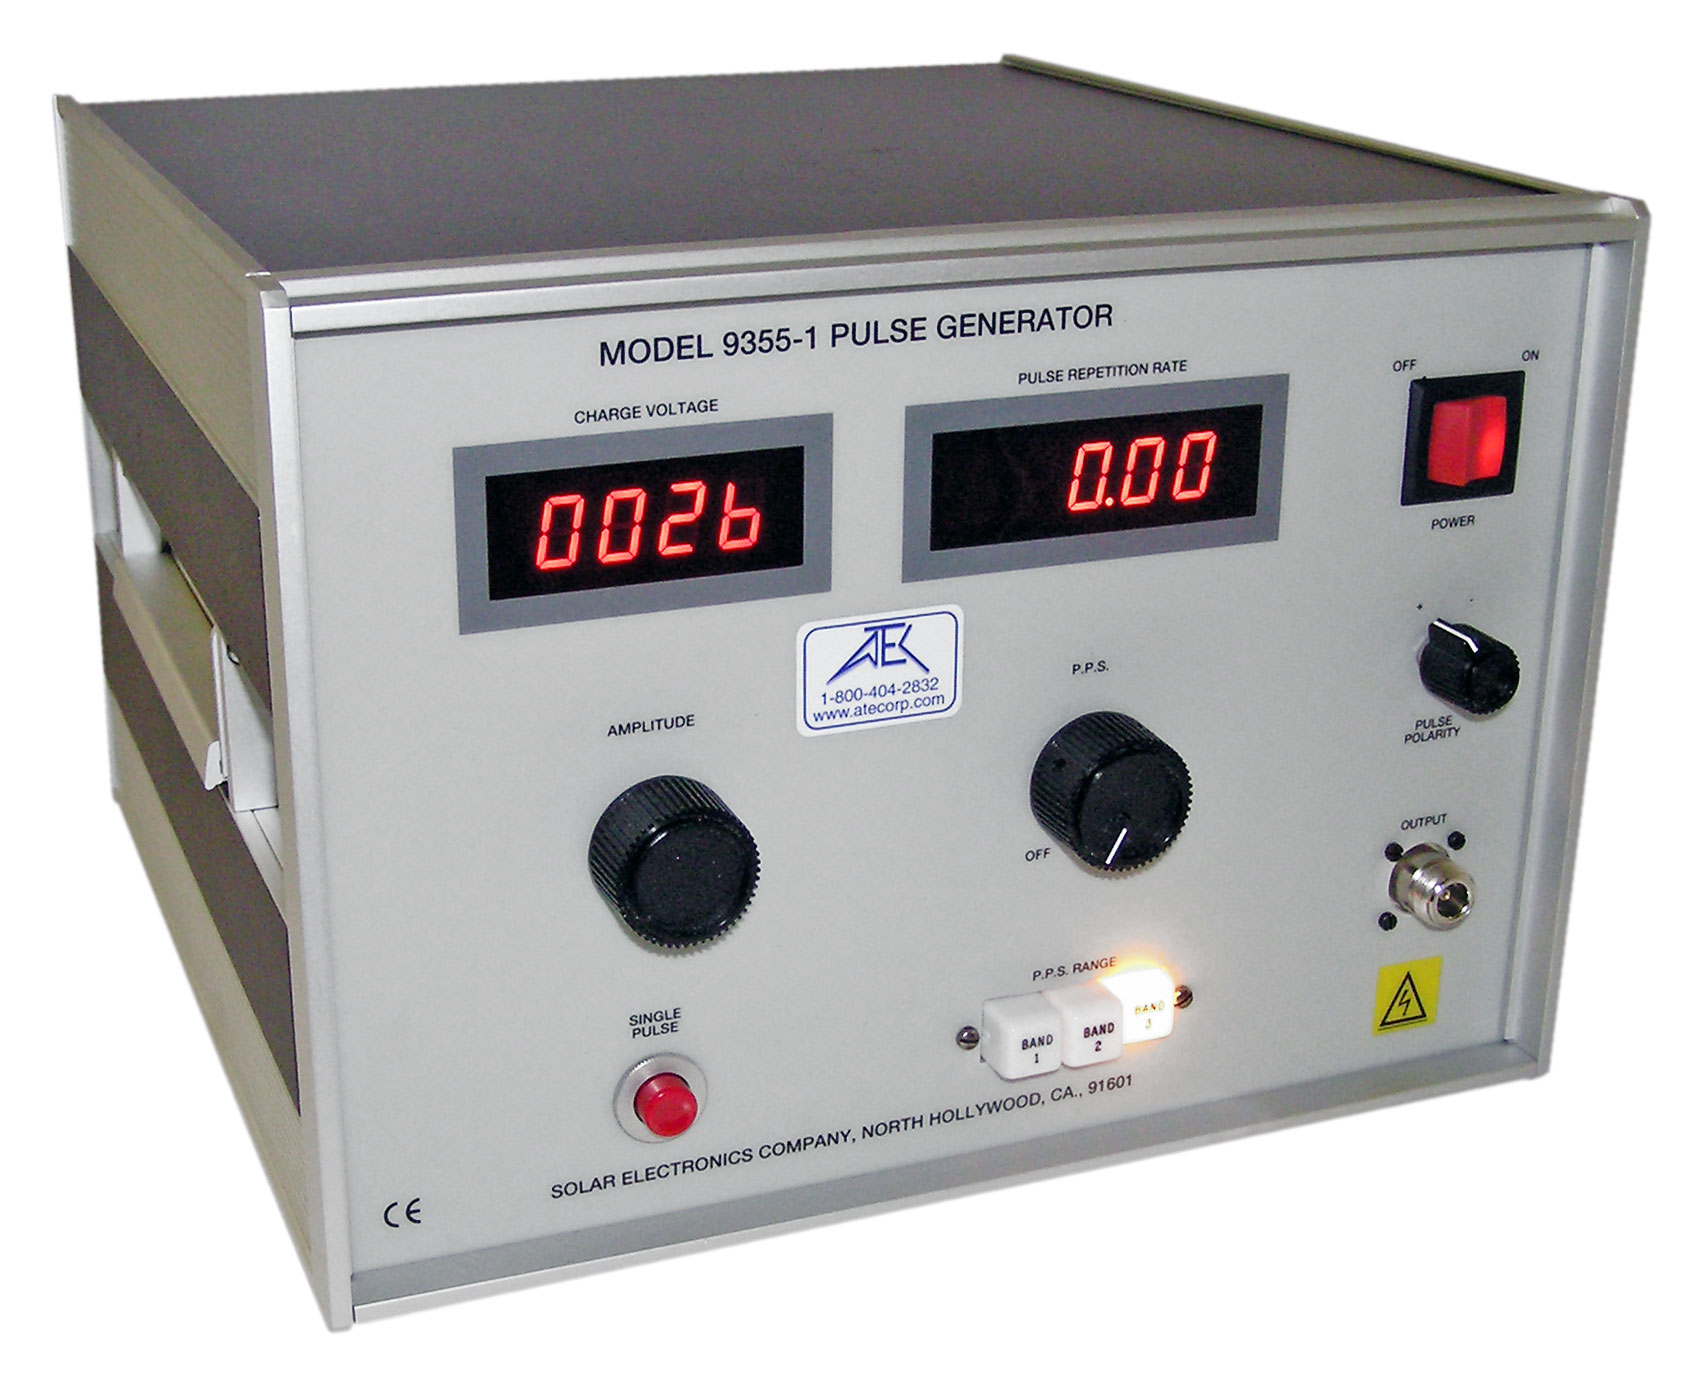 Solar 9355-1 Pulse Generator for MIL-STD-461D/E CS115